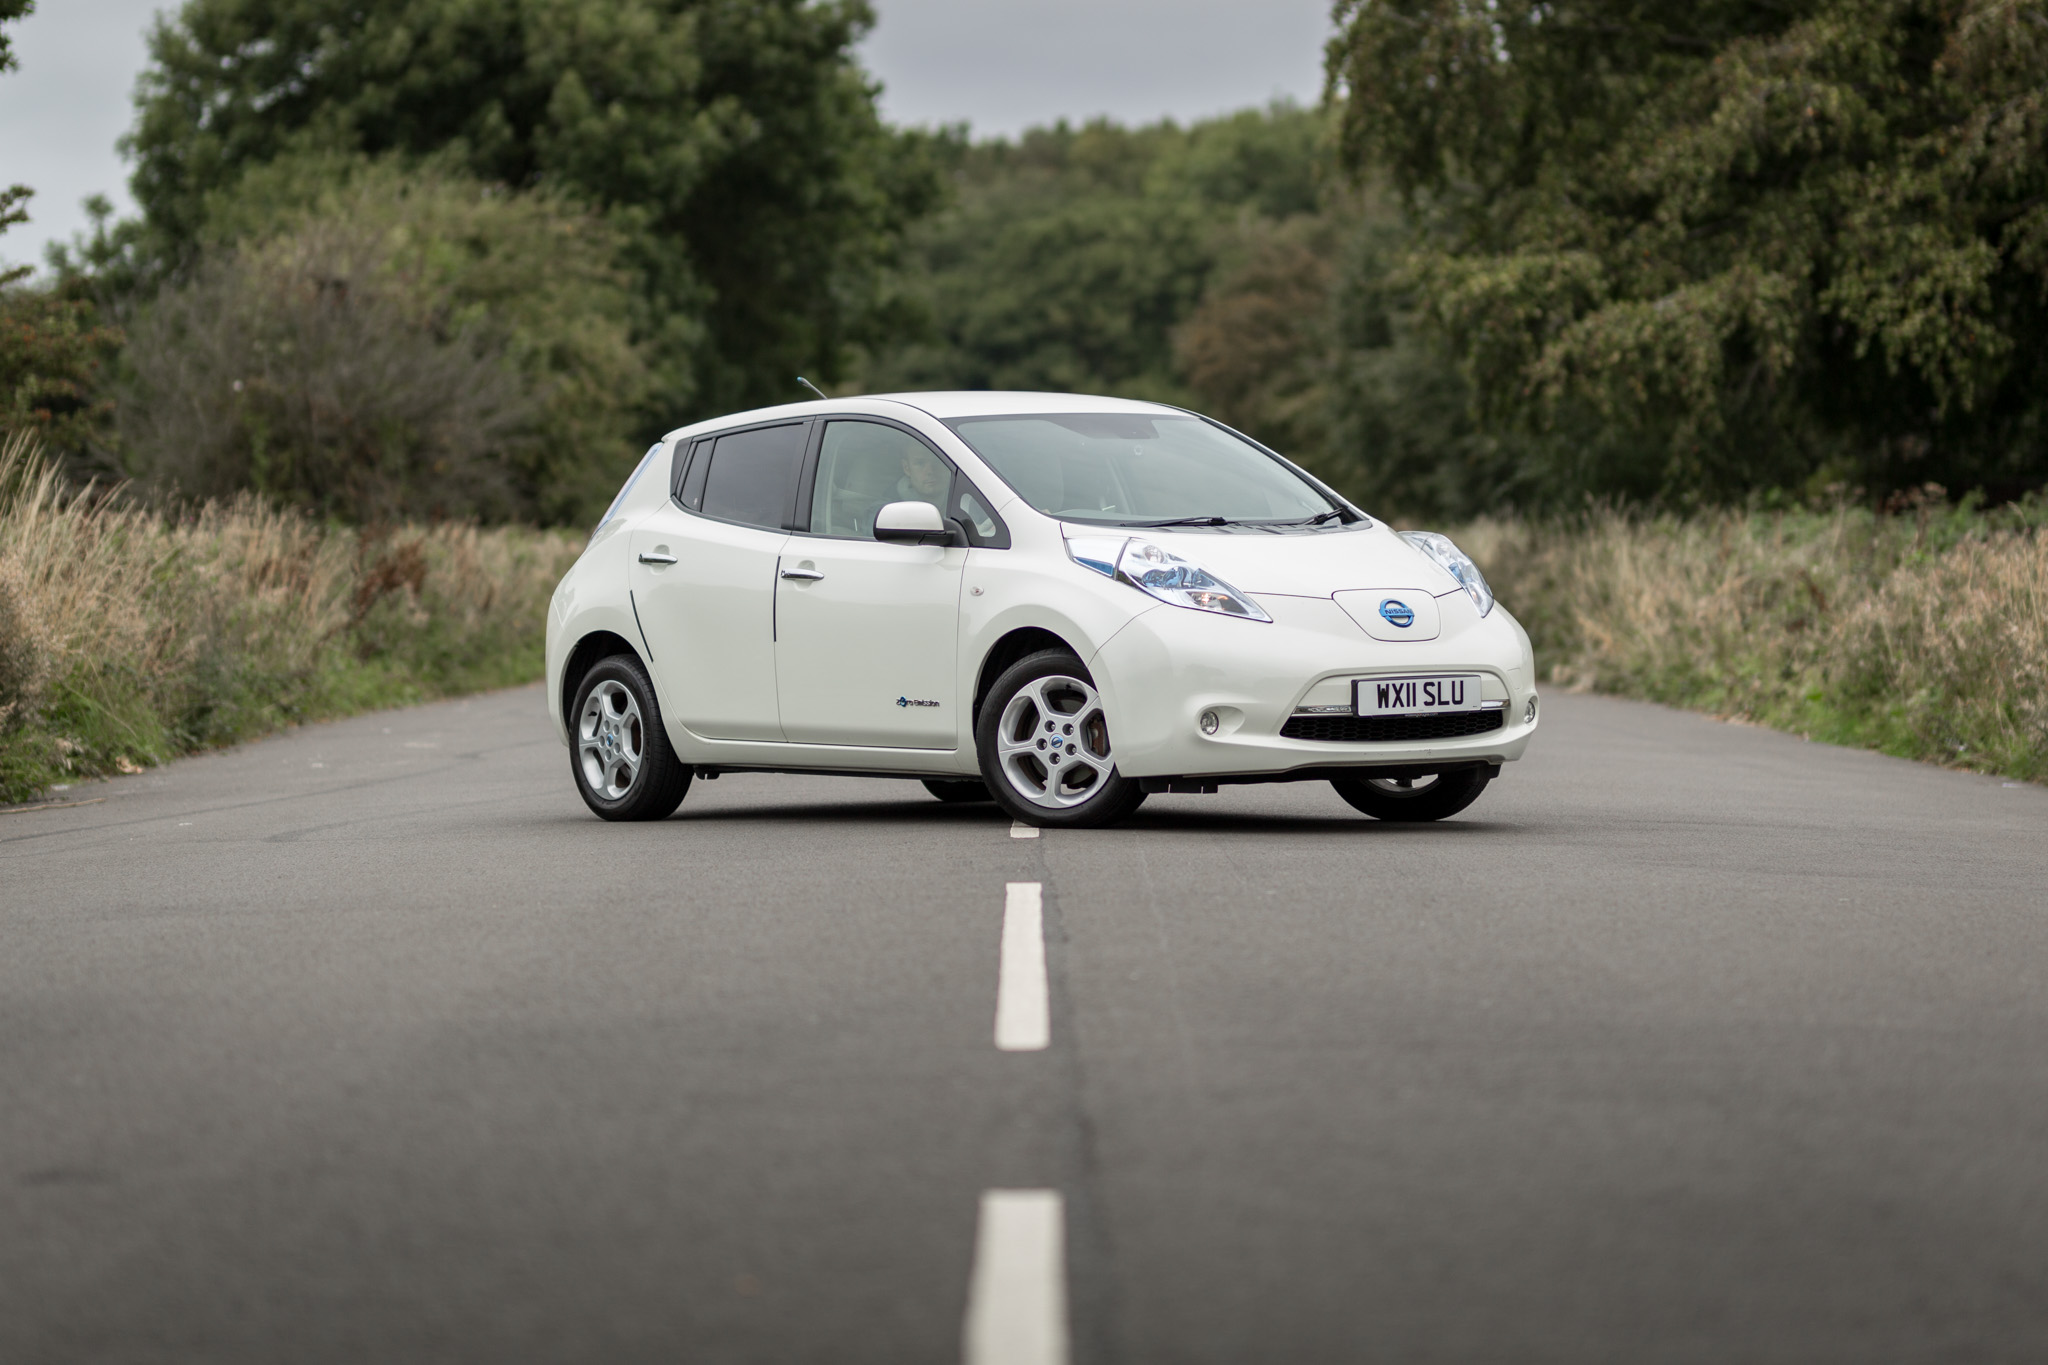 To Know About Secondhand Electric Cars Specifically We Ll Be Discussing The Generation 1 Nissan Leaf A Cute Quirky Car With Unique Body Shape